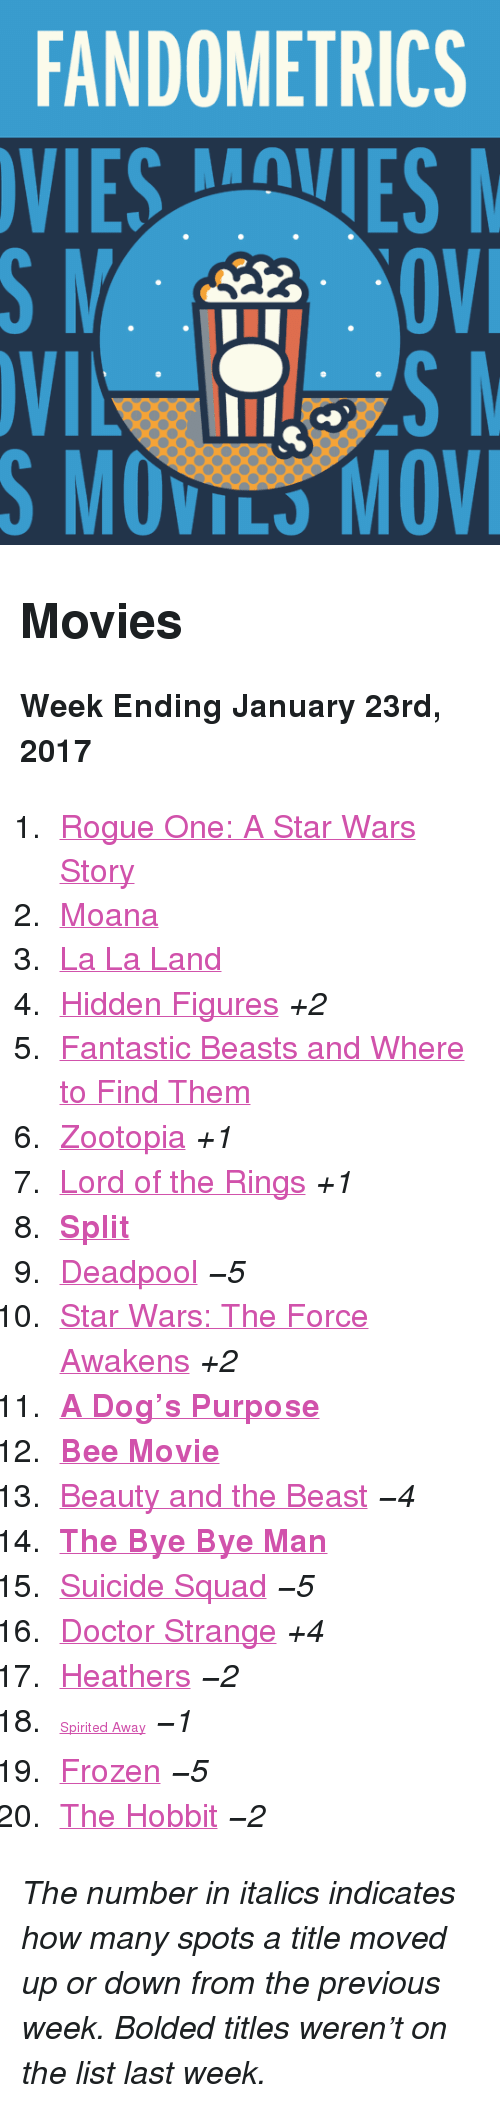 """Bee Movie, Doctor, and Frozen: FANDOMETRICS  VIESVES  S MOVILS MOV <h2>Movies</h2><p><b>Week Ending January 23rd, 2017</b></p><ol><li><a href=""""http://www.tumblr.com/search/rogue%20one"""">Rogue One: A Star Wars Story</a></li>  <li><a href=""""http://www.tumblr.com/search/moana"""">Moana</a></li>  <li><a href=""""http://www.tumblr.com/search/la%20la%20land"""">La La Land</a></li>  <li><a href=""""http://www.tumblr.com/search/hidden%20figures"""">Hidden Figures</a><i>+2</i></li>  <li><a href=""""http://www.tumblr.com/search/fantastic%20beasts%20and%20where%20to%20find%20them"""">Fantastic Beasts and Where to Find Them</a></li>  <li><a href=""""http://www.tumblr.com/search/zootopia"""">Zootopia</a><i>+1</i></li>  <li><a href=""""http://www.tumblr.com/search/lotr"""">Lord of the Rings</a><i>+1</i></li>  <li><a href=""""http://www.tumblr.com/search/split""""><b>Split</b></a></li>  <li><a href=""""http://www.tumblr.com/search/deadpool"""">Deadpool</a><i>−5</i></li>  <li><a href=""""http://www.tumblr.com/search/the%20force%20awakens"""">Star Wars: The Force Awakens</a><i>+2</i></li>  <li><a href=""""http://www.tumblr.com/search/a%20dogs%20purpose""""><b>A Dog&rsquo;s Purpose</b></a></li>  <li><a href=""""http://www.tumblr.com/search/bee%20movie""""><b>Bee Movie</b></a></li>  <li><a href=""""http://www.tumblr.com/search/beauty%20and%20the%20beast"""">Beauty and the Beast</a><i>−4</i></li>  <li><a href=""""http://www.tumblr.com/search/the%20bye%20bye%20man""""><b>The Bye Bye Man</b></a></li>  <li><a href=""""http://www.tumblr.com/search/suicide%20squad"""">Suicide Squad</a><i>−5</i></li>  <li><a href=""""http://www.tumblr.com/search/doctor%20strange"""">Doctor Strange</a><i>+4</i></li>  <li><a href=""""http://www.tumblr.com/search/heathers"""">Heathers</a><i>−2</i></li><li><a href=""""http://www.tumblr.com/search/spirited%20away"""" style=""""font-size: 14px;"""">Spirited Away</a><i>−1</i></li>  <li><a href=""""http://www.tumblr.com/search/frozen"""">Frozen</a><i>−5</i></li>  <li><a href=""""http://www.tumblr.com/search/the%20hobbit"""">The Hobbit</a><i>−2</i></li></ol><p><i>The number in italic"""